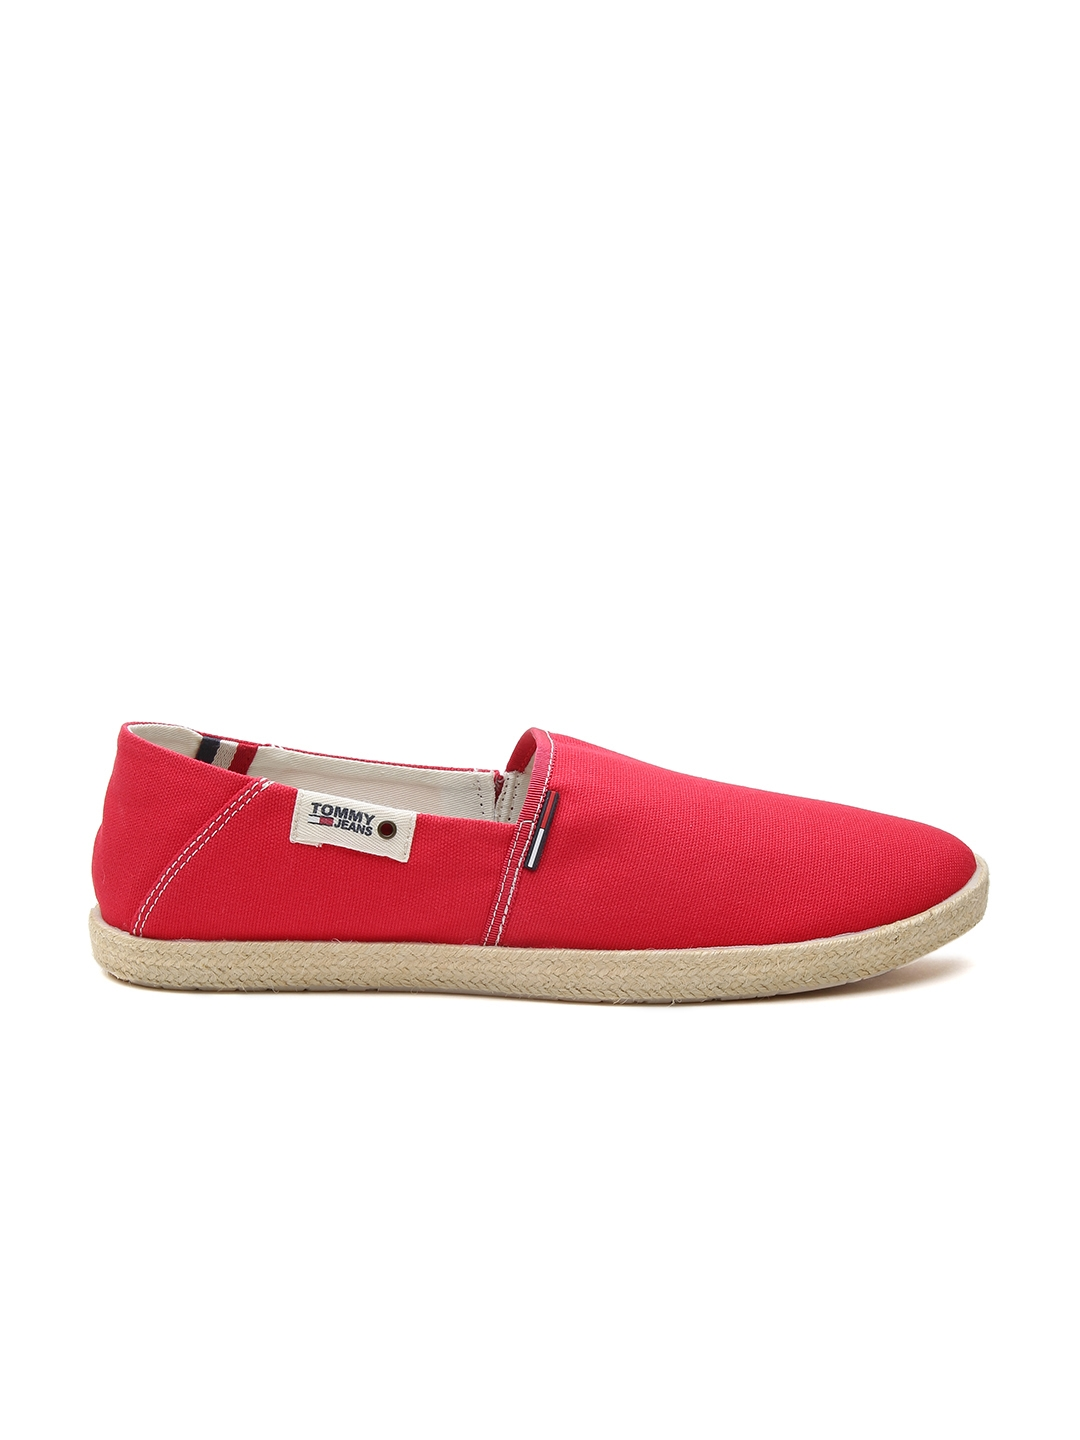 86e68aeba Buy Tommy Hilfiger Men Red Espadrilles - Casual Shoes for Men ...